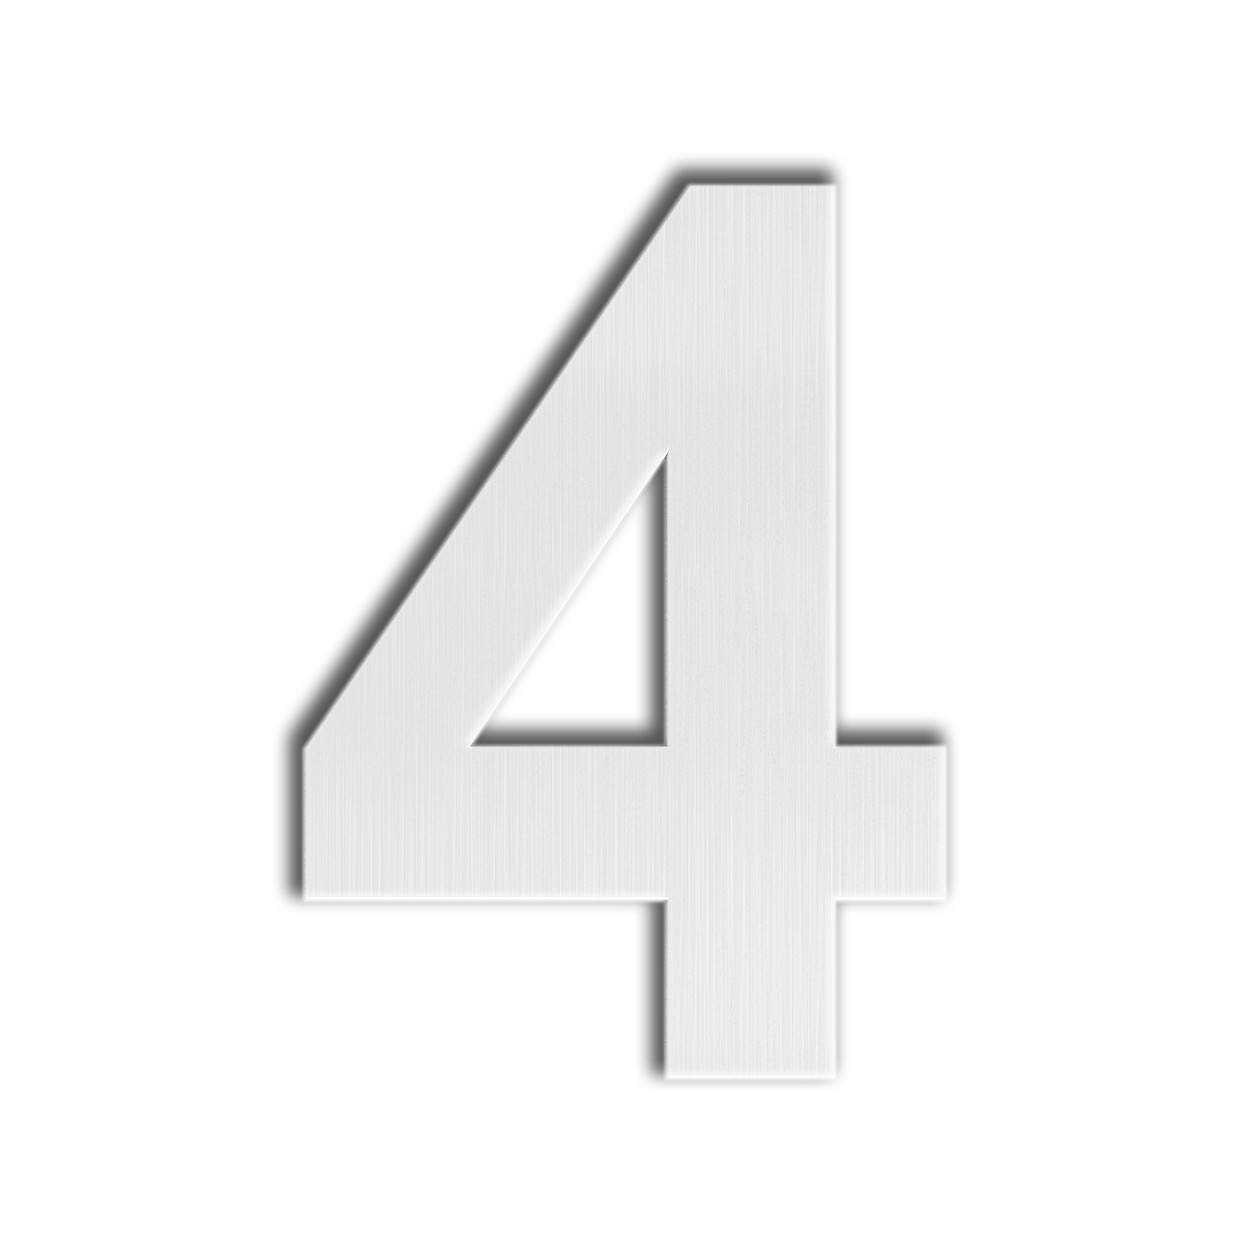 Large 5 Inch QT Modern House Number Easy to Install and Made of Solid 304 Floating Appearance Letter a Brushed Stainless Steel